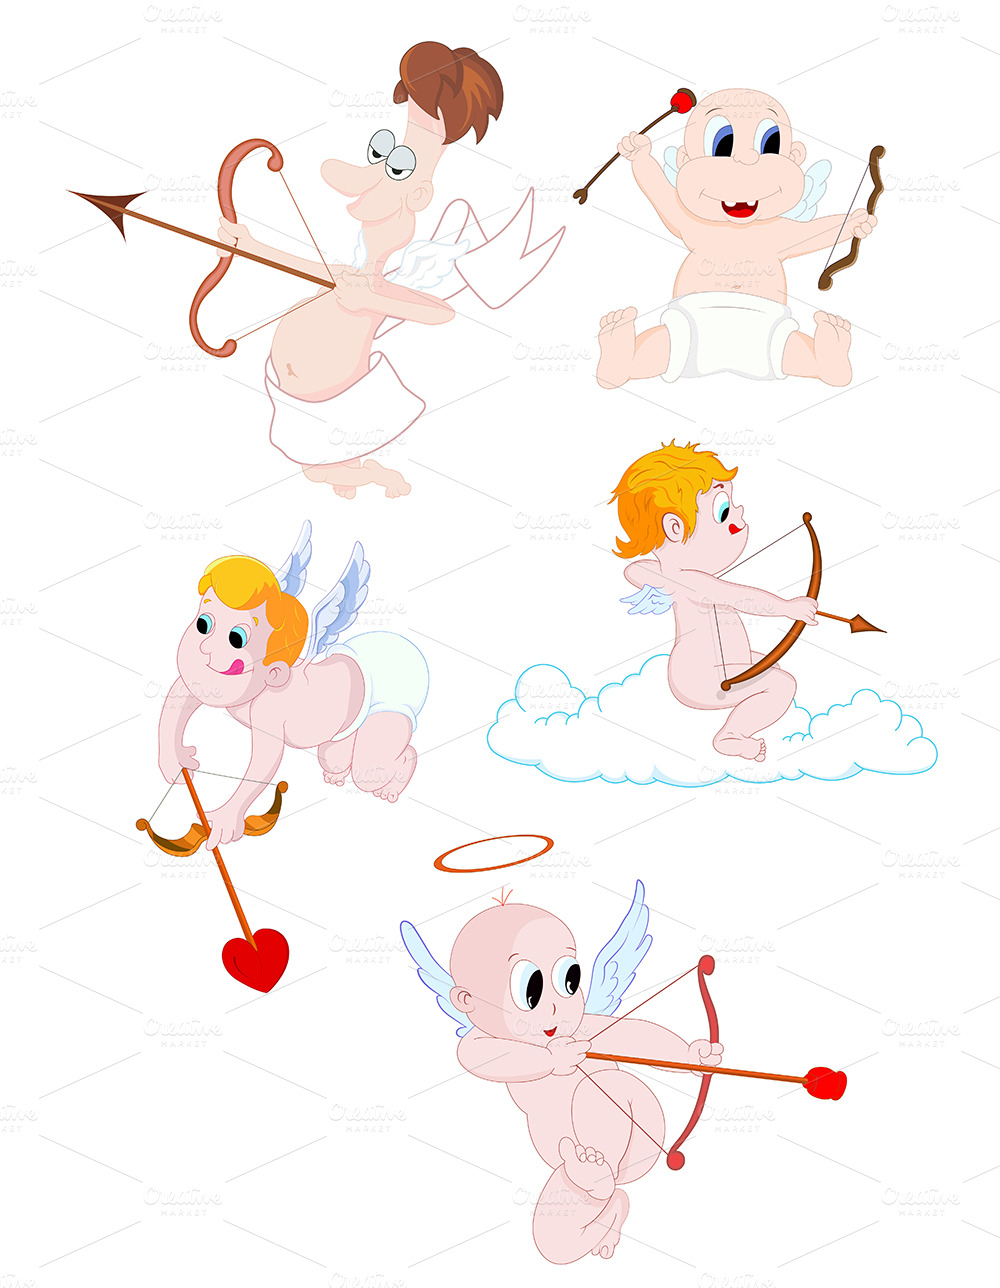 Cupids ~ Illustrations on Creative Market